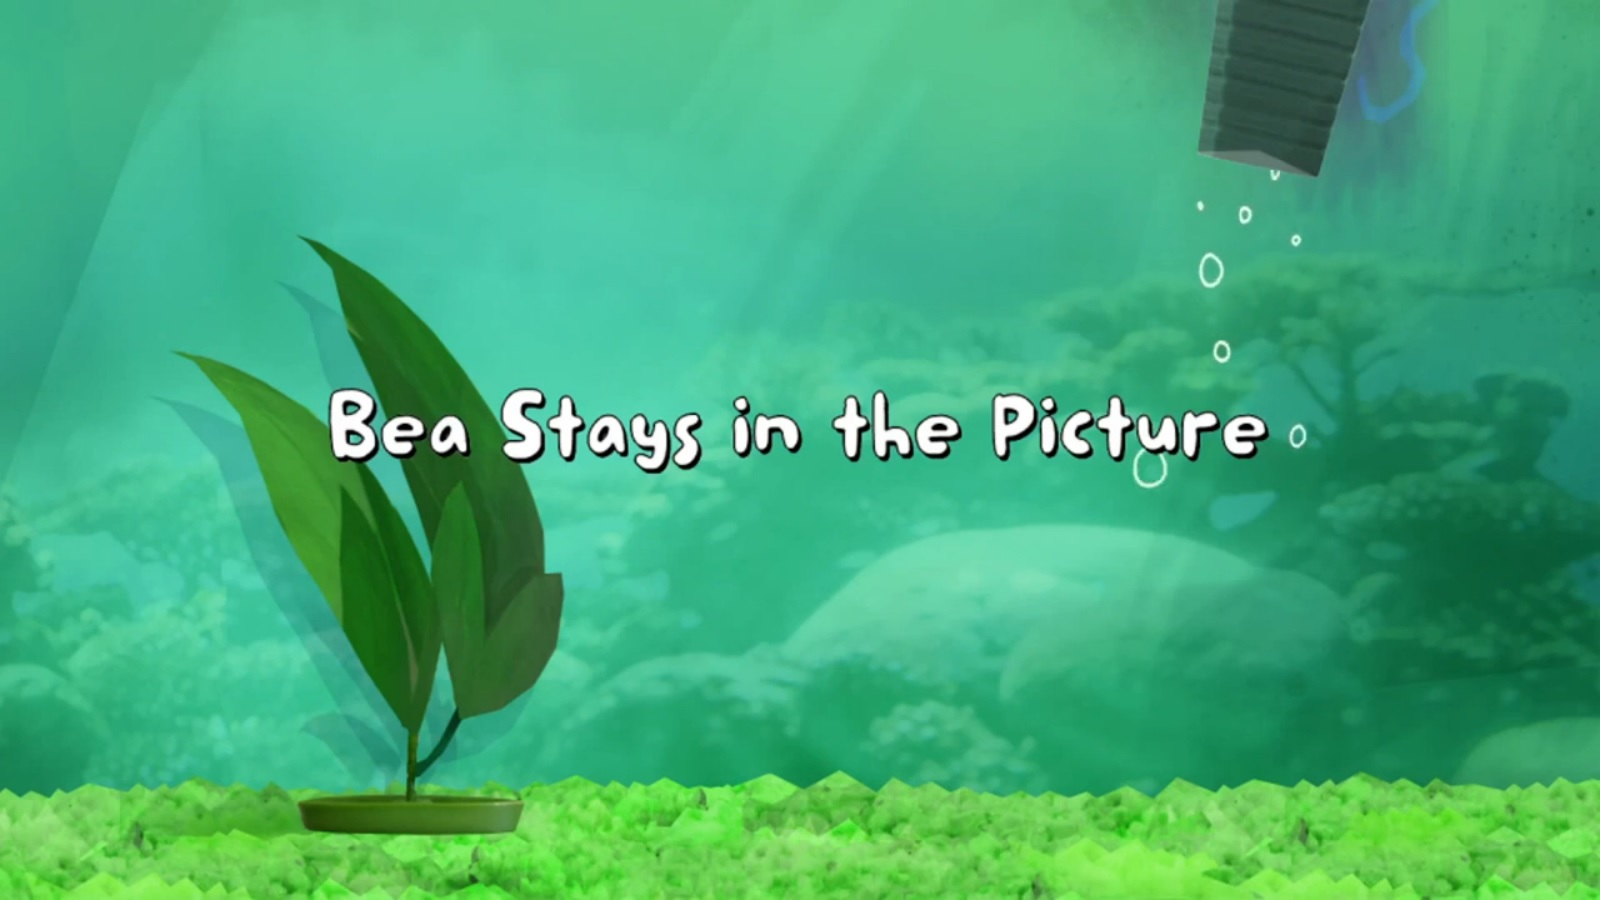 Bea Stays in the Picture